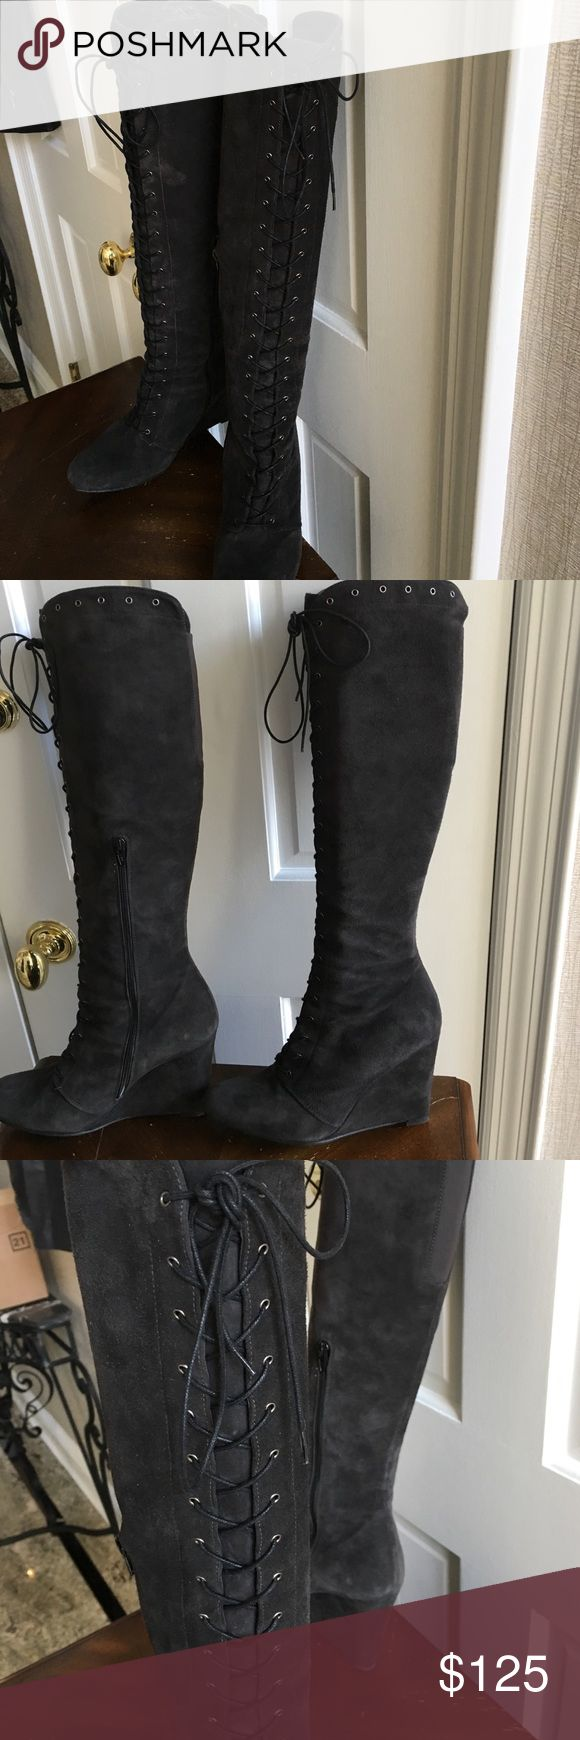 Ladies wedge suede boots by Stuart weitzman Black sued lace up boots, slightly over knee w side zipper for easy acces Stuart Weitzman Shoes Over the Knee Boots